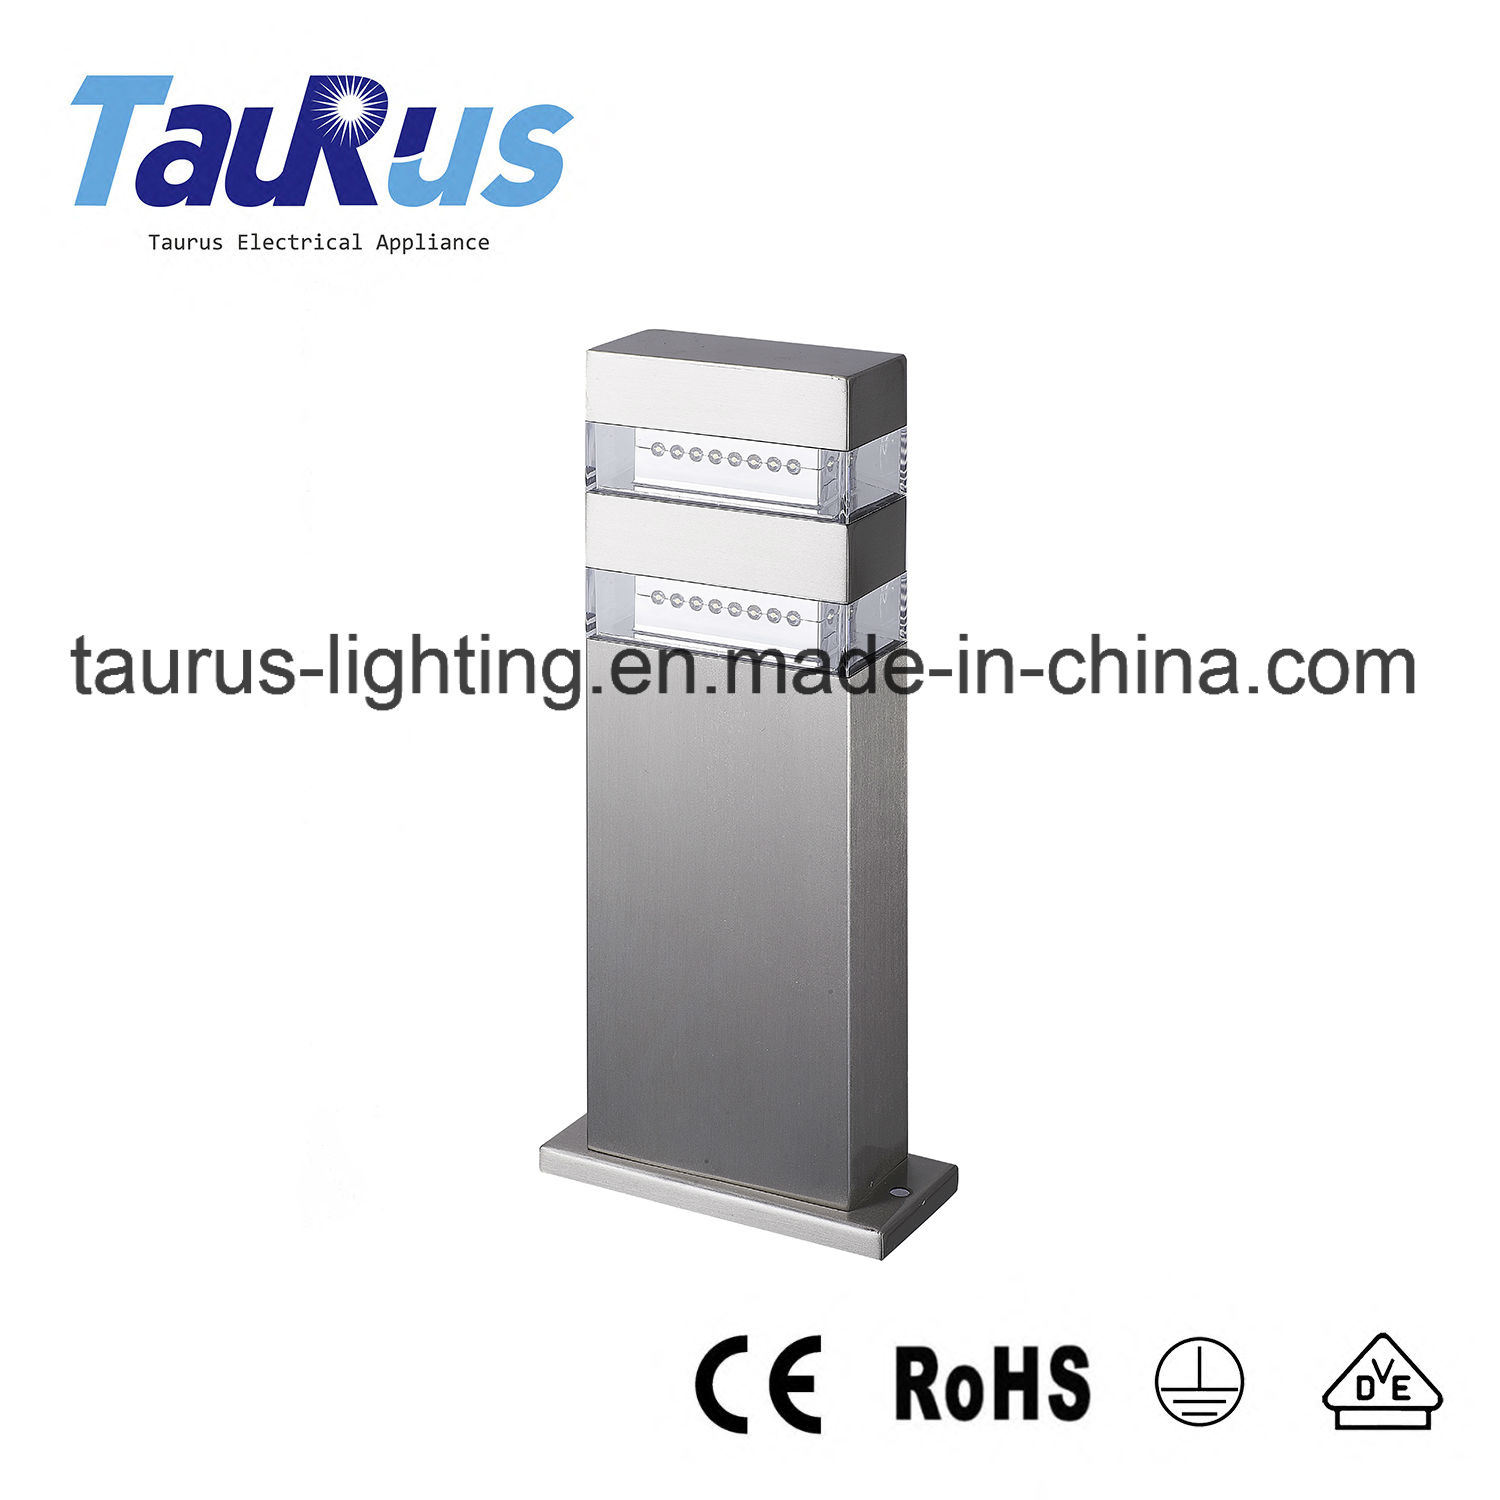 2.4W White LED Stainless Steel Outdoor Lighting (5502B-300)